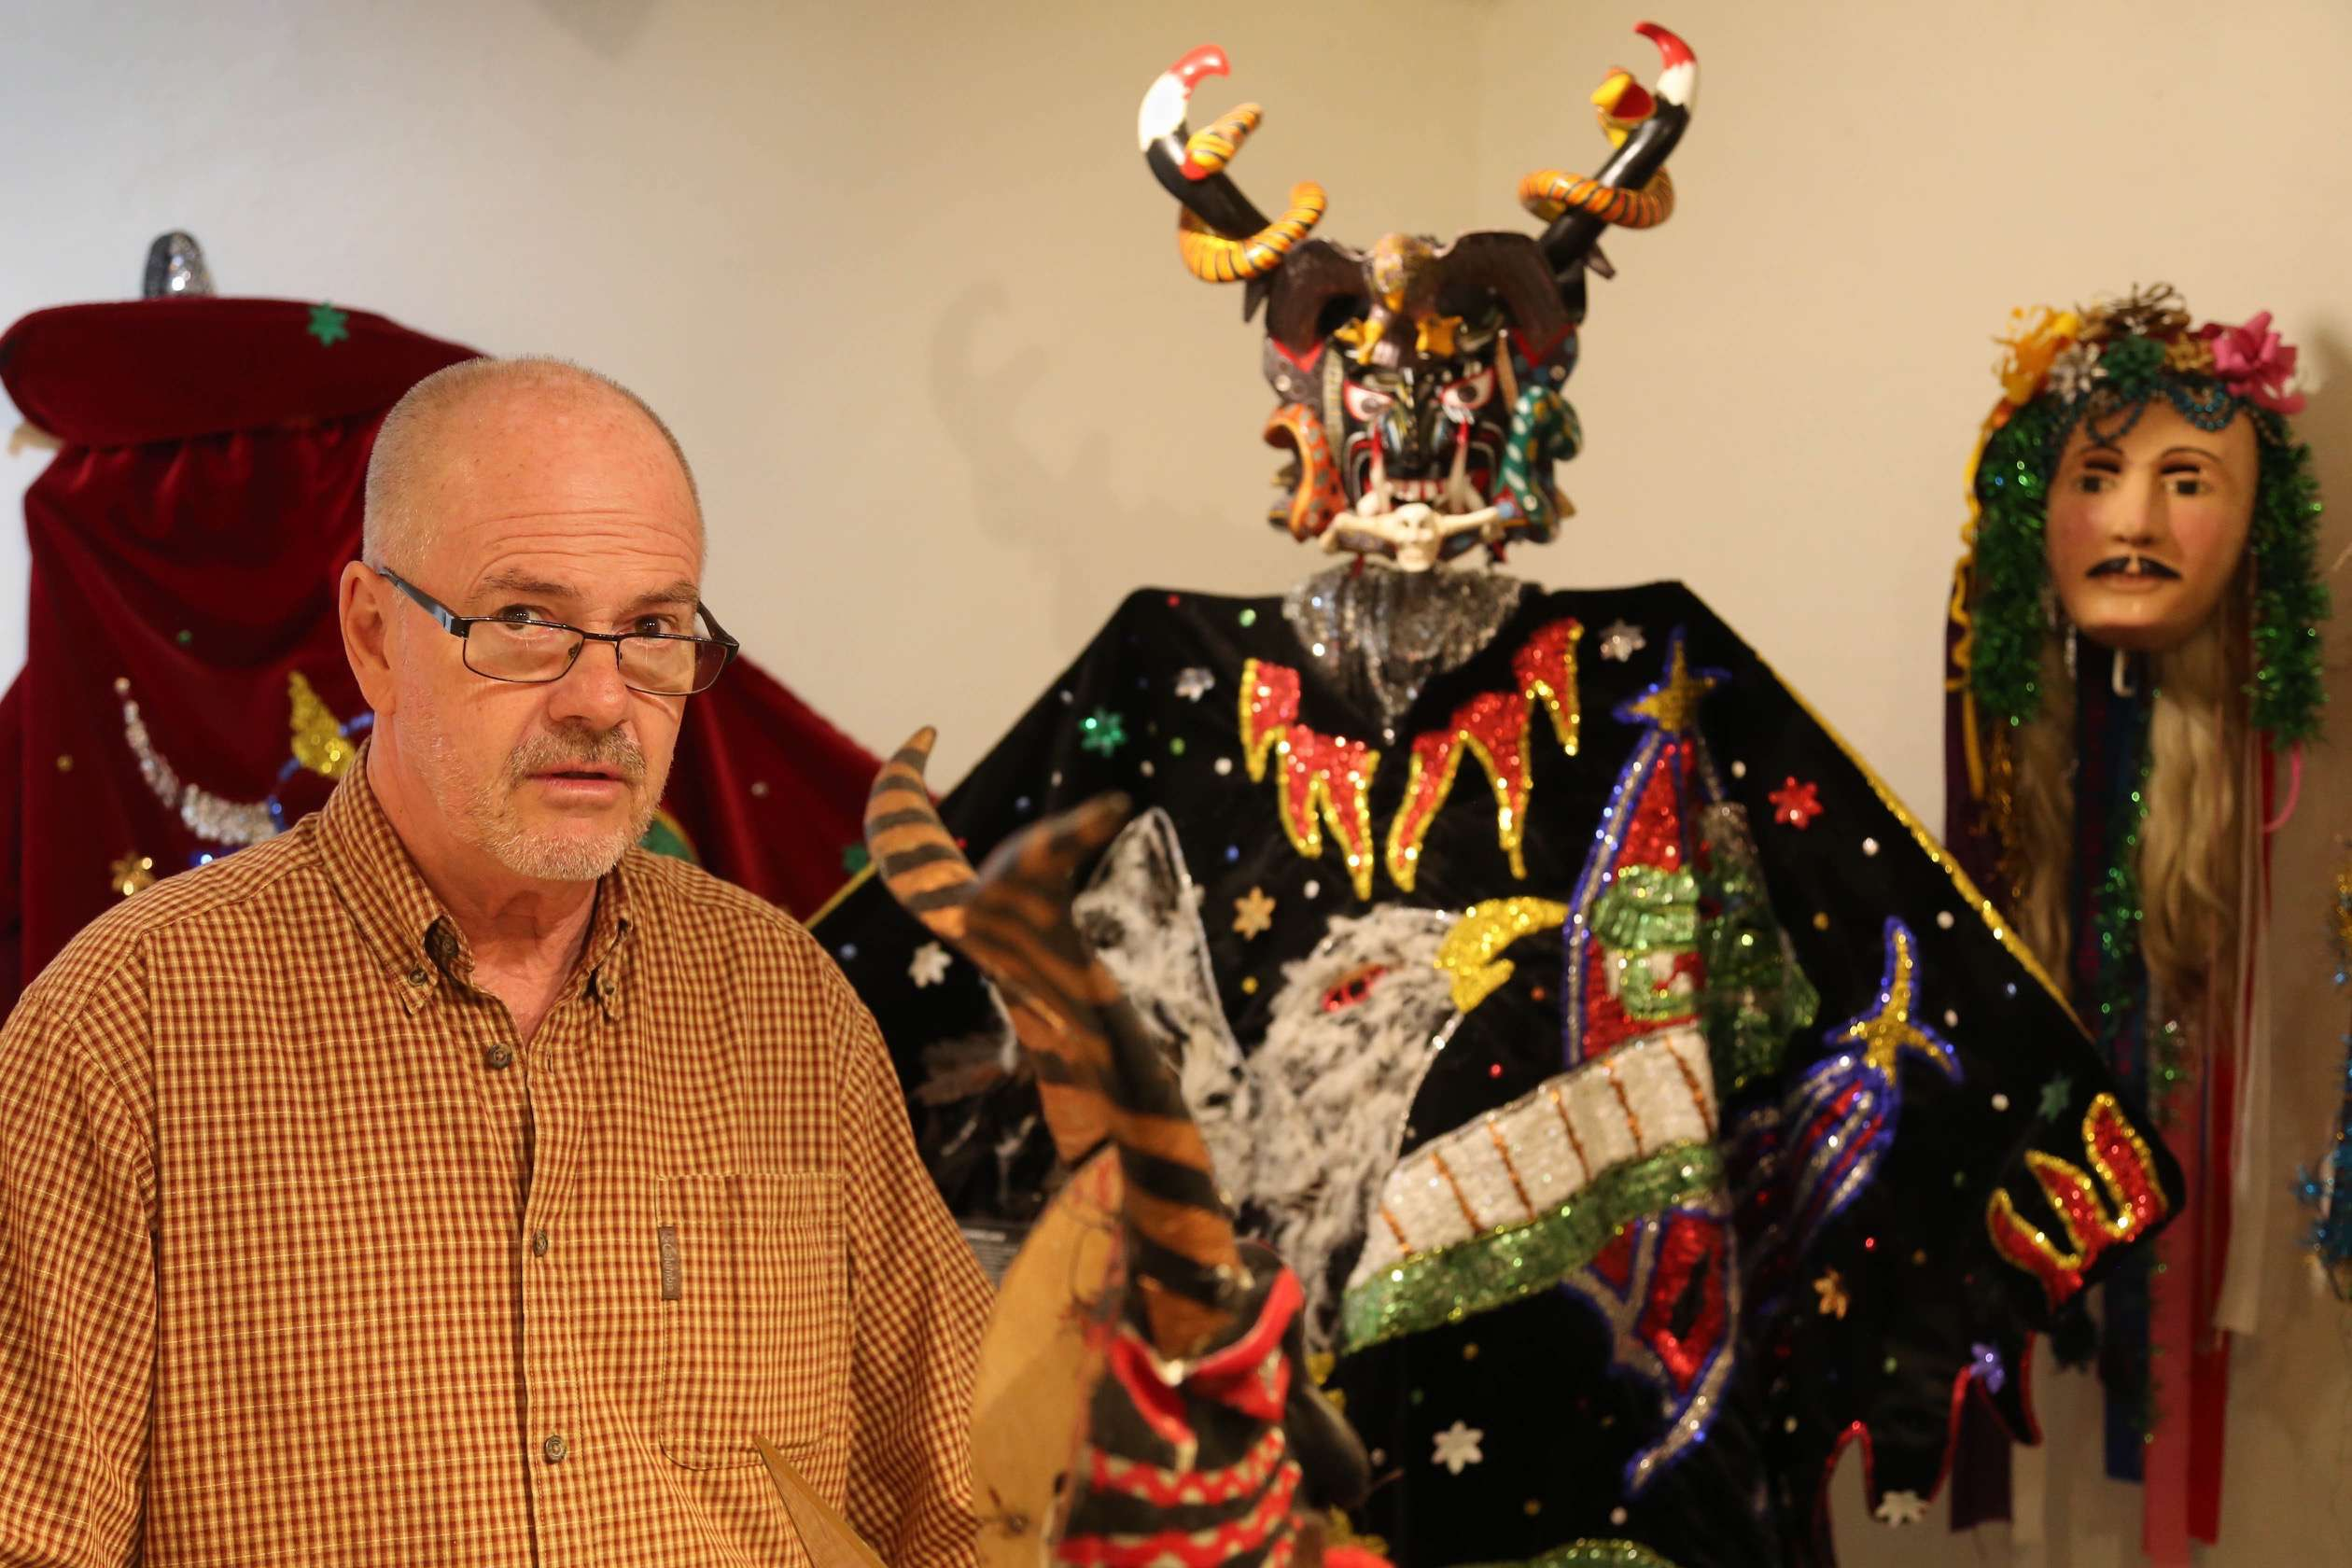 Bill LaVasseur, owner and curator of La Otra Cara de Mexico (The Other Face of Mexico), is passionate about sharing his knowledge of masks and their place in the culture of Mexico.